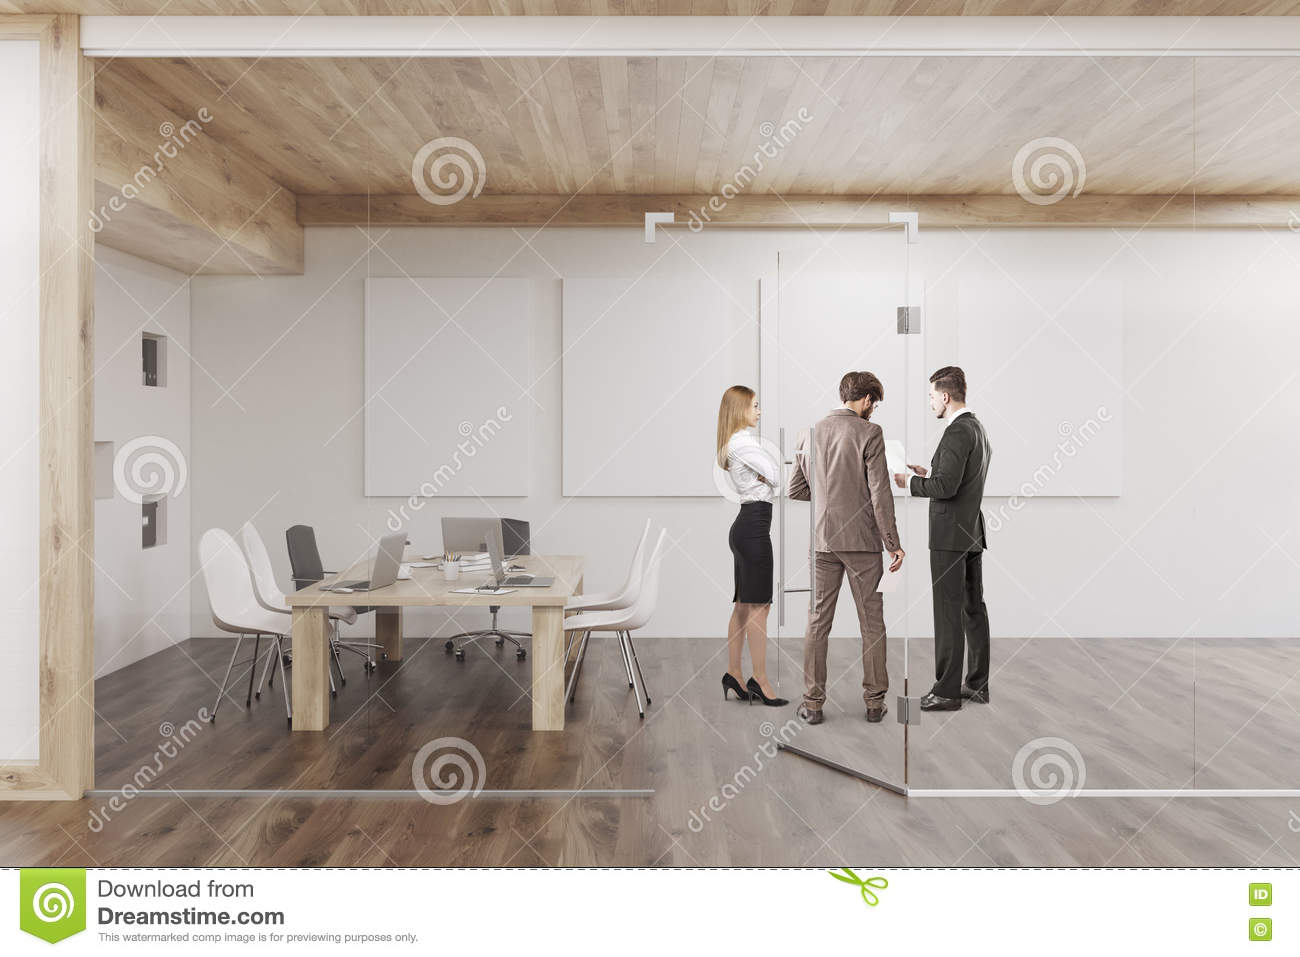 People Are Talking In Conference Room With Four Posters